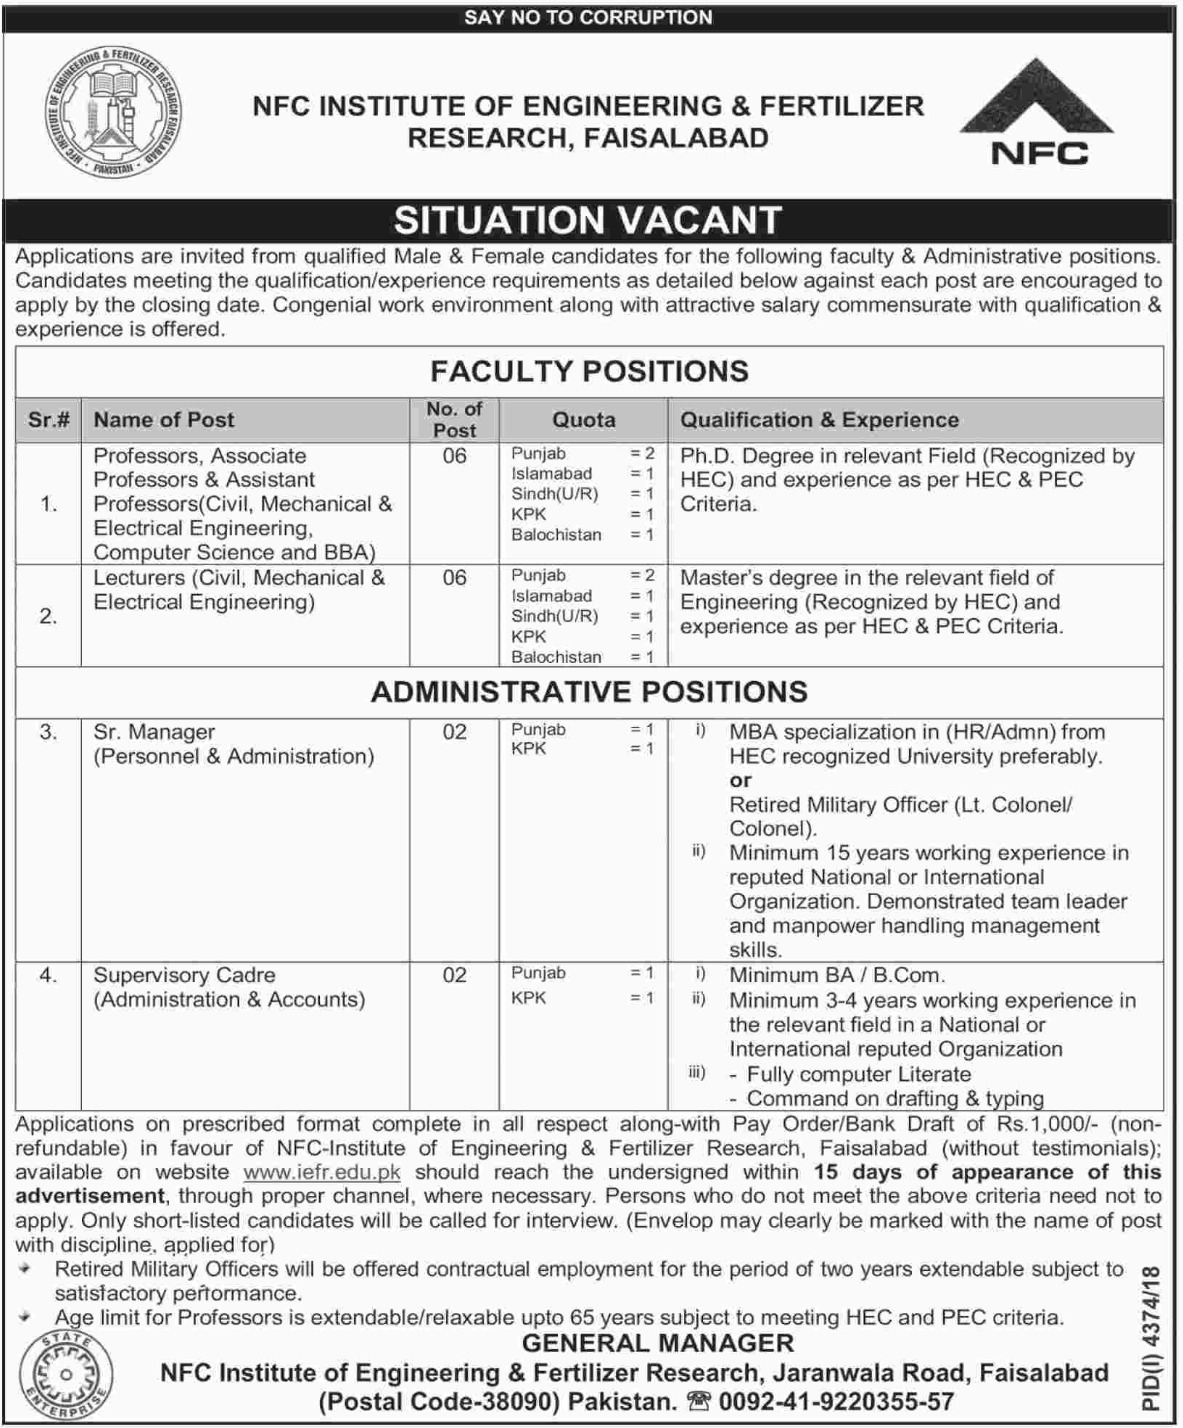 NFC Institute of Engineering & Fertilizer Research Faisalabad Jobs 2019 Latest